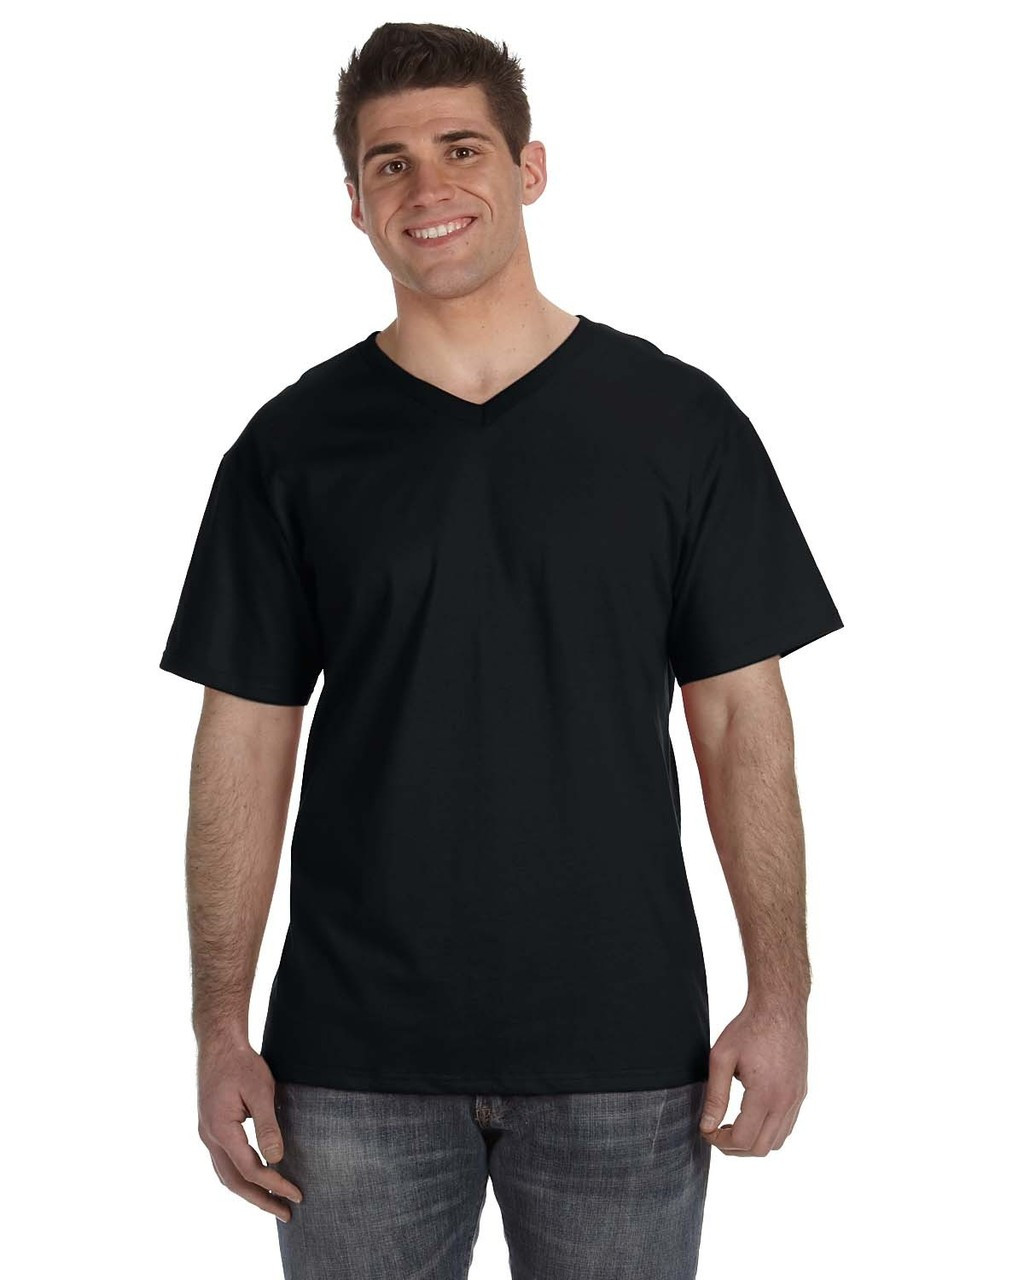 Black - 39VR Fruit of the Loom 100% Heavy Cotton HD® V-Neck T-Shirt | Blankclothing.ca